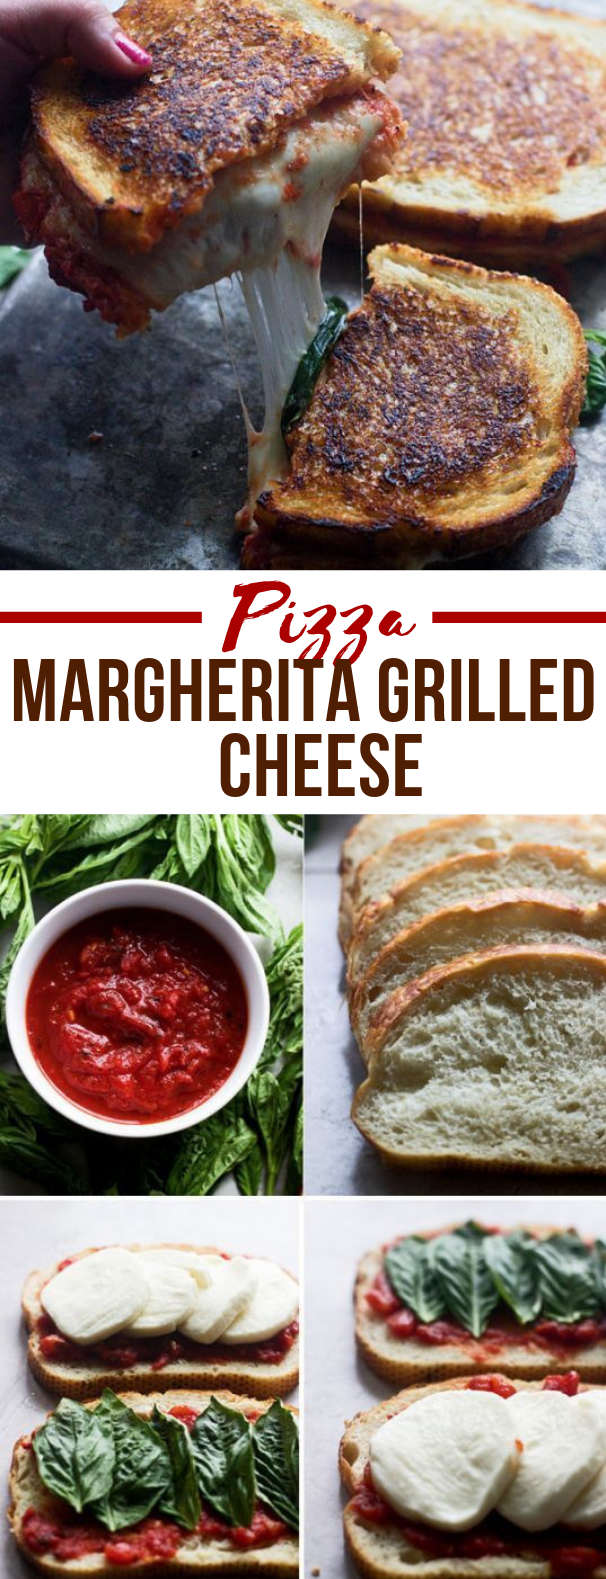 Pizza Margherita Grilled Cheese #dinner #sandwich